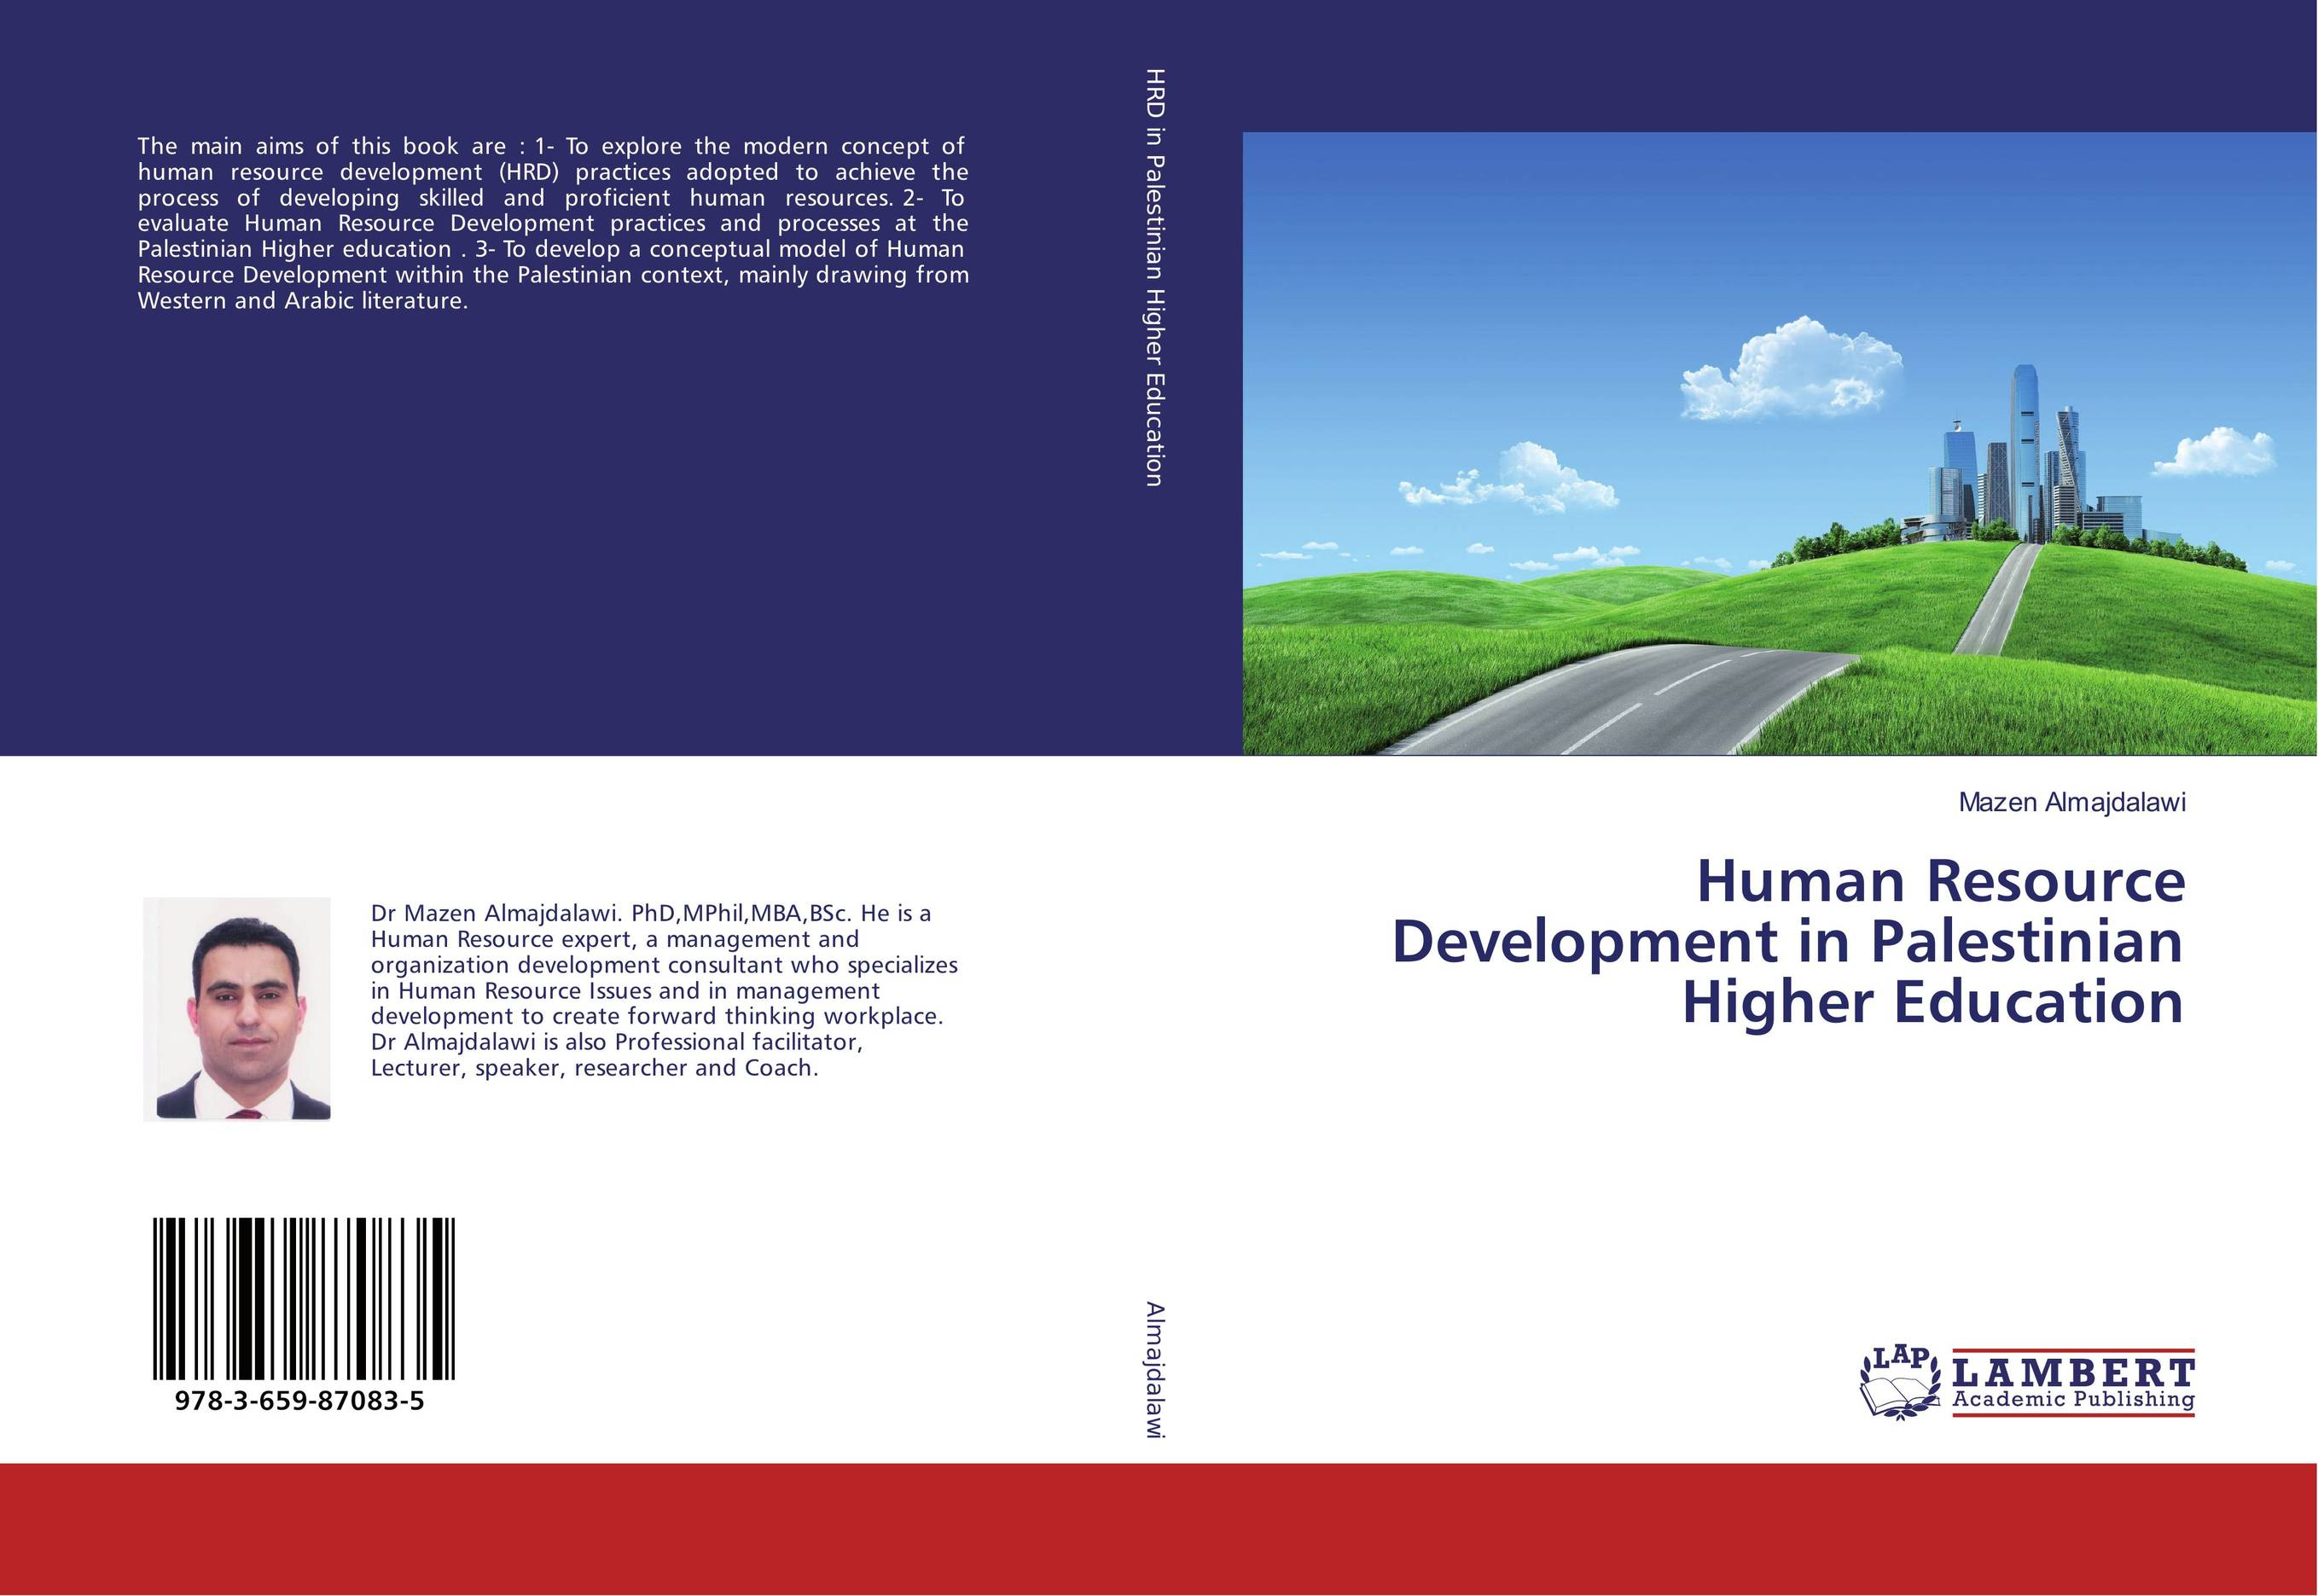 Human Resource Development in Palestinian Higher Education